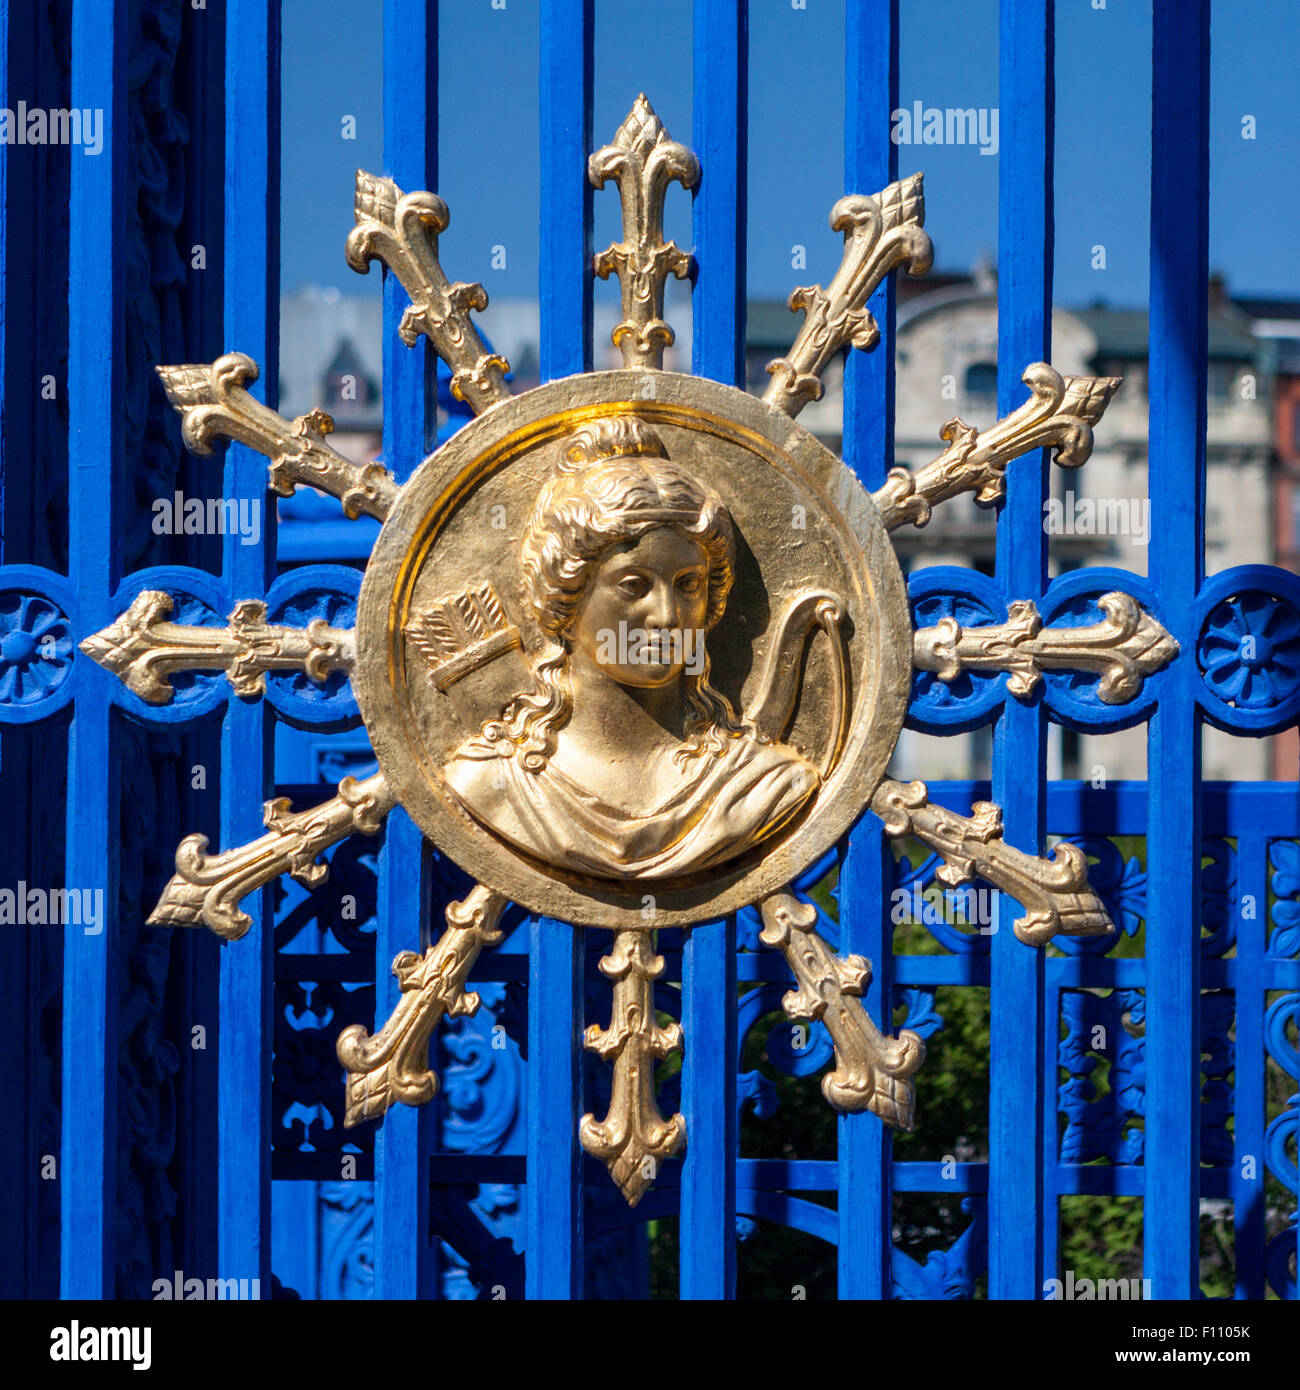 Gilt medallion on gate to Lusthusporten mansion in the Djurgarden, Stockholm, Sweden - Stock Image